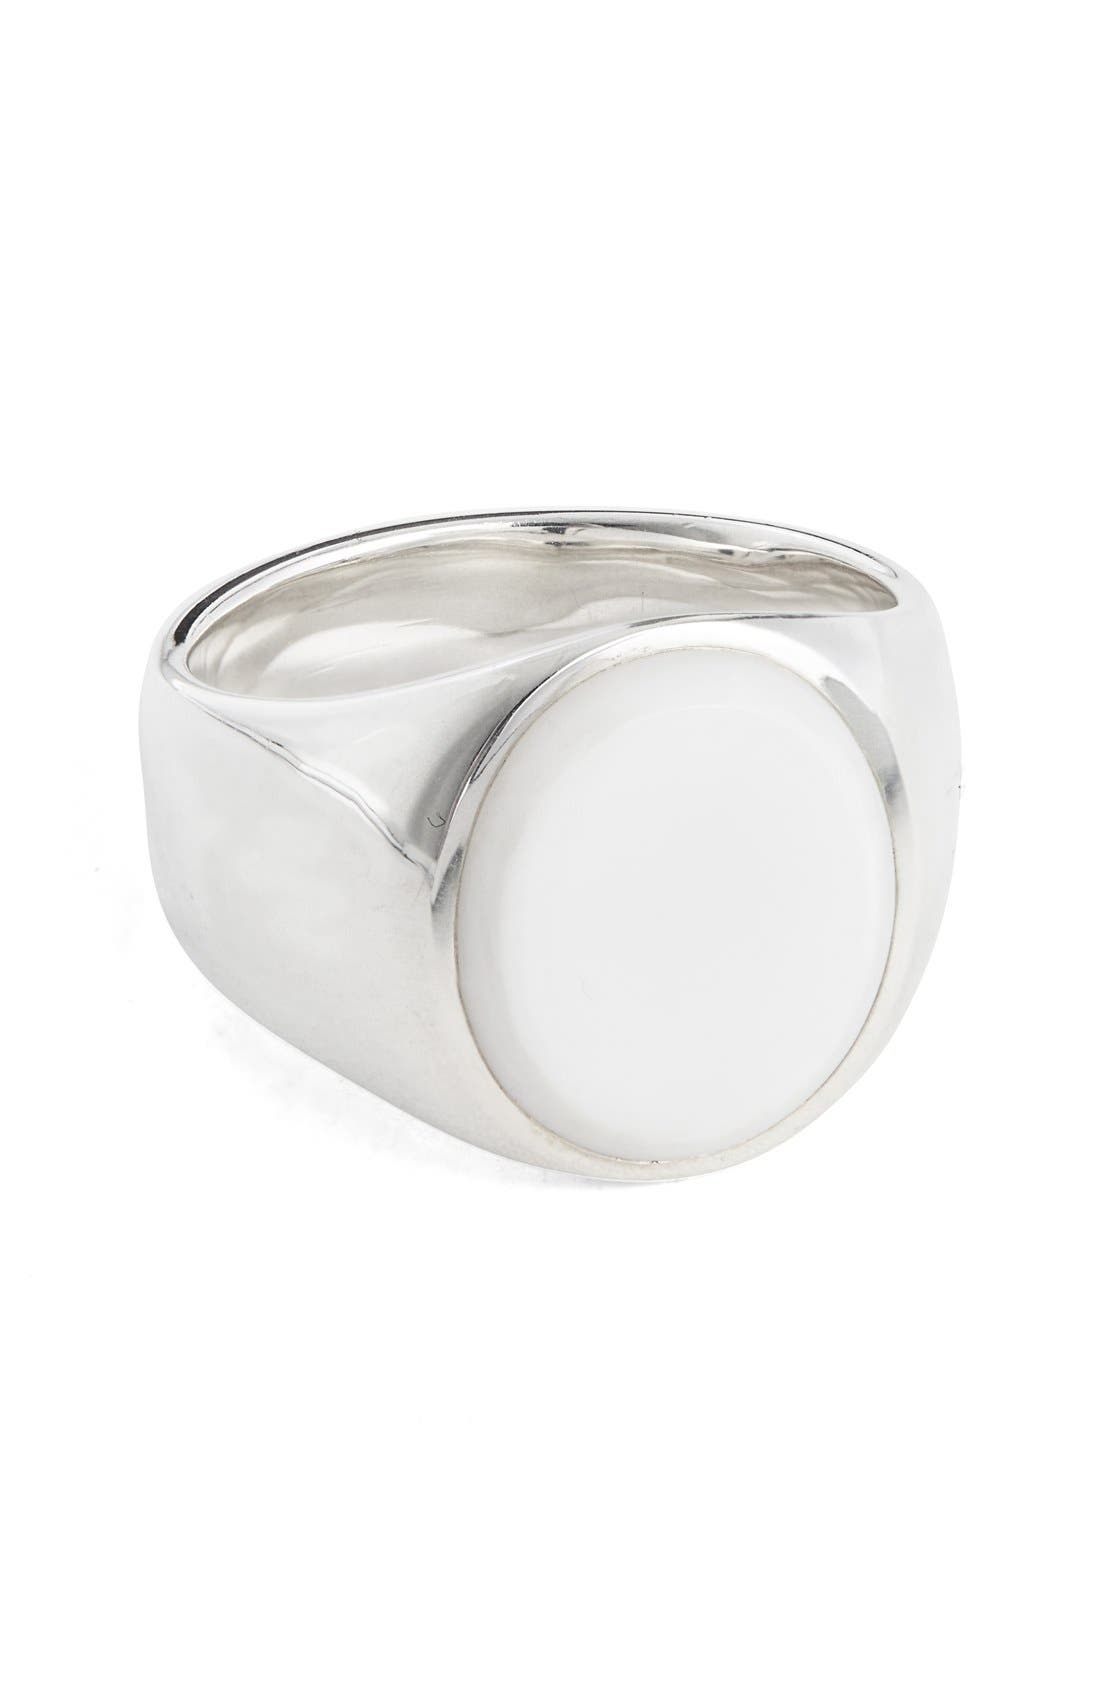 'patriot Collection' Oval White Agate Signet Ring by Tom Wood